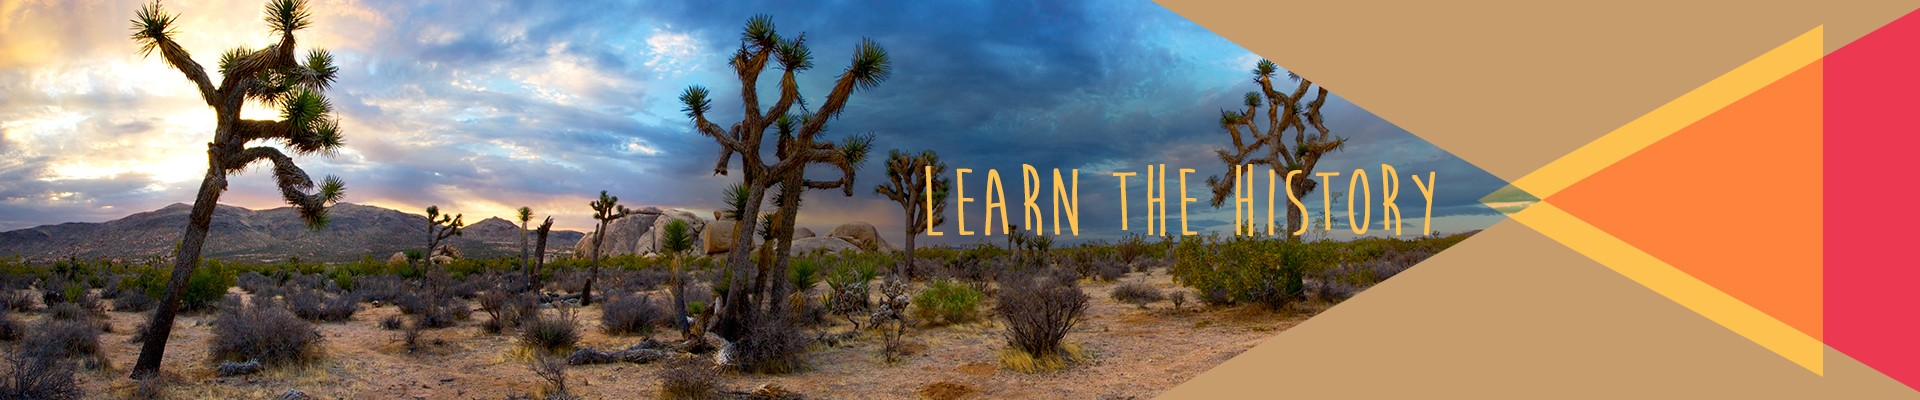 Learn the history - Joshua Tree National Park